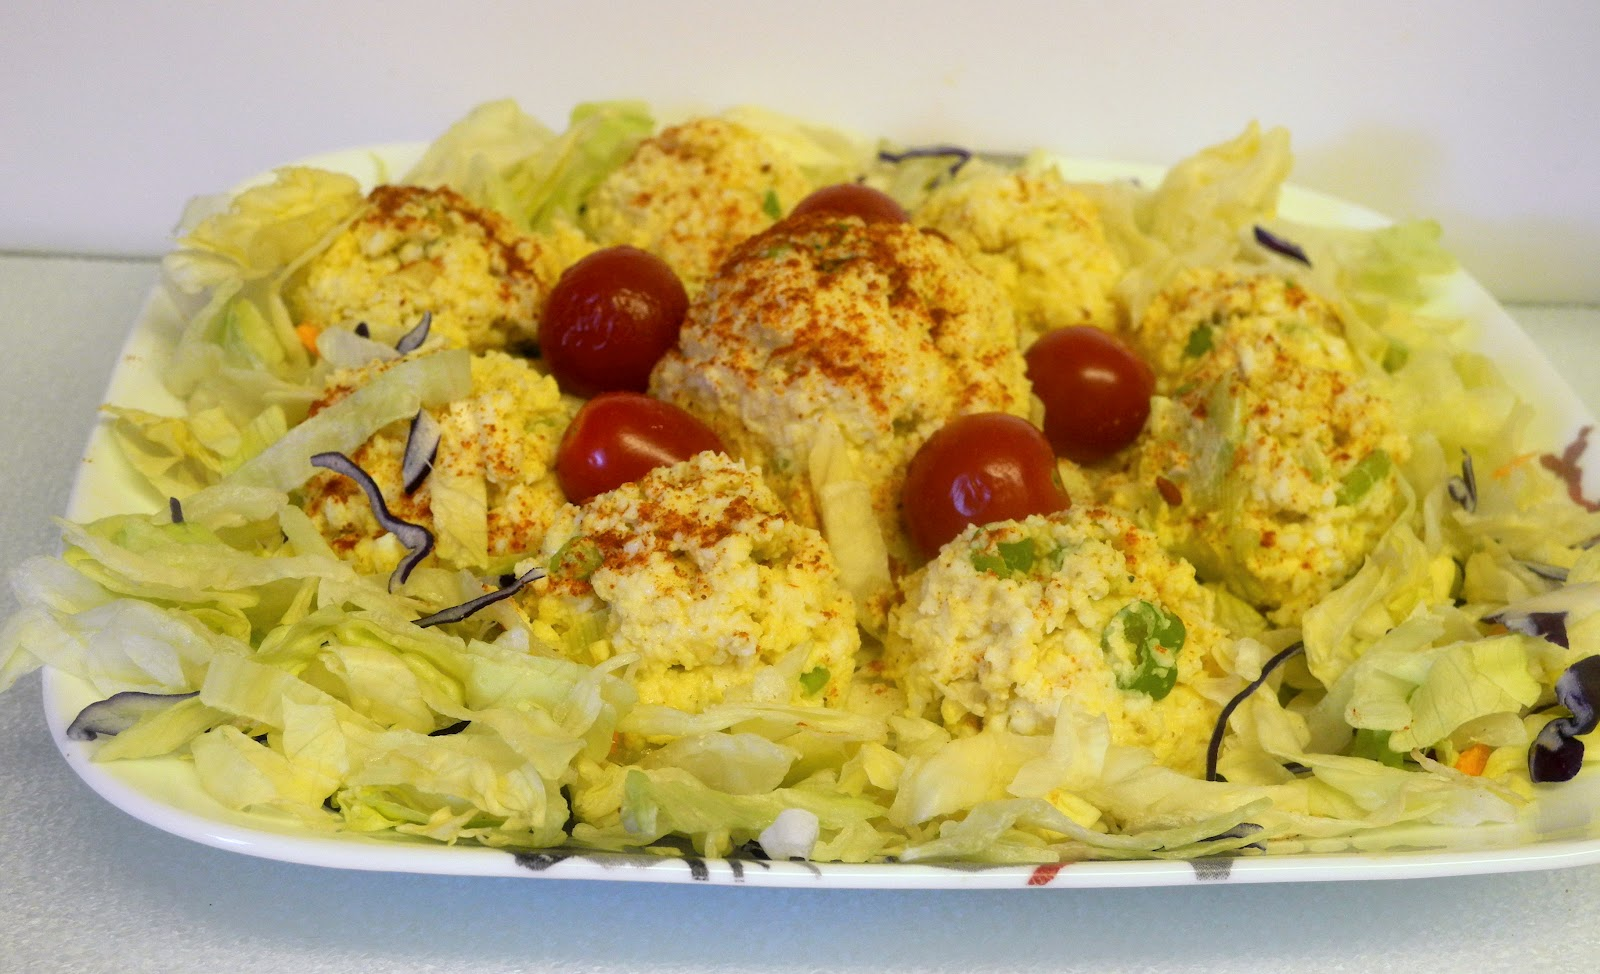 My Sweet and Savory: Curried Egg Salad